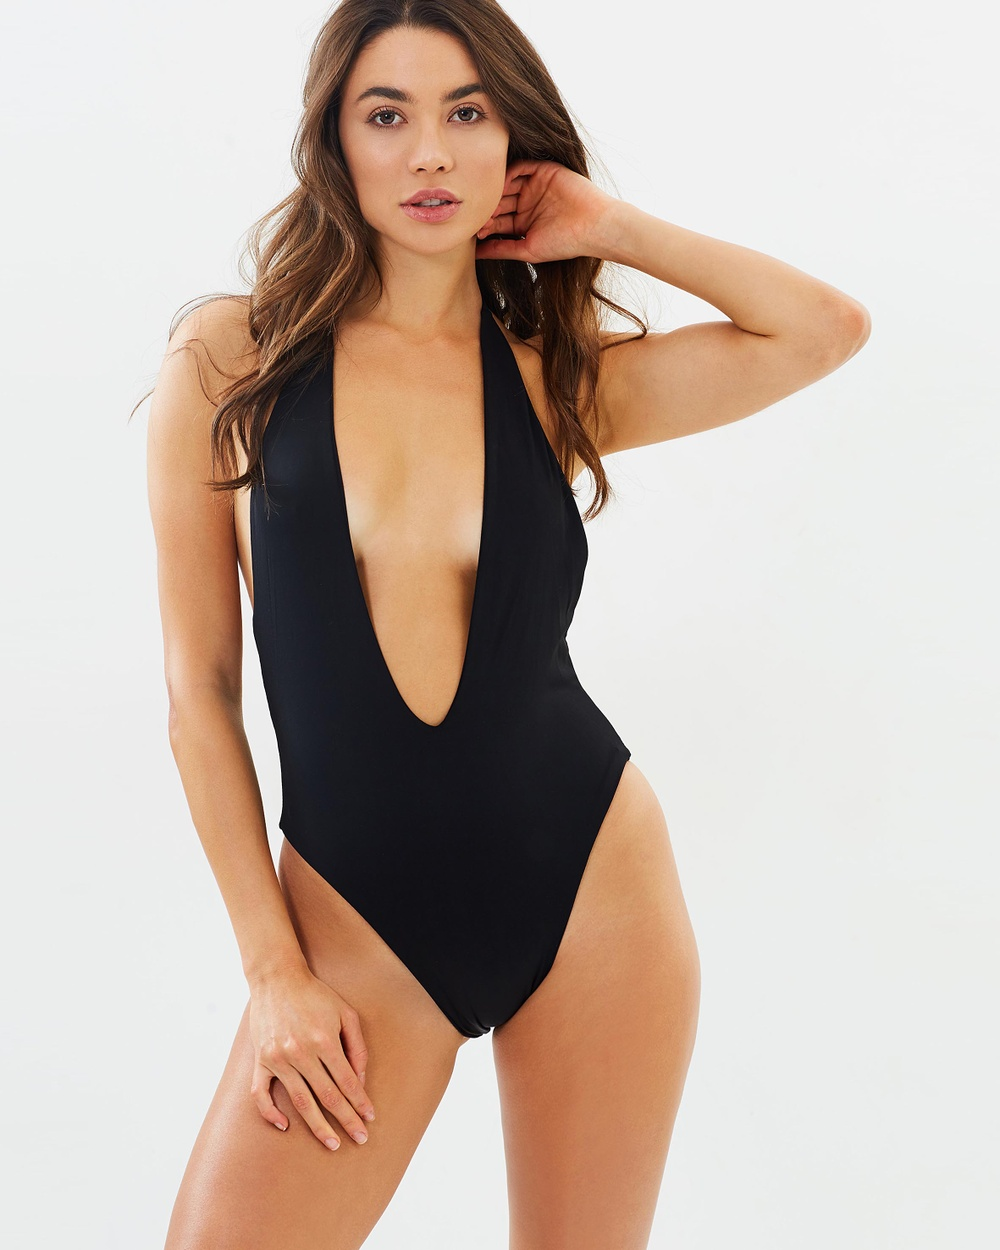 Lioness The Cindy One-Piece / Swimsuit Black The Cindy